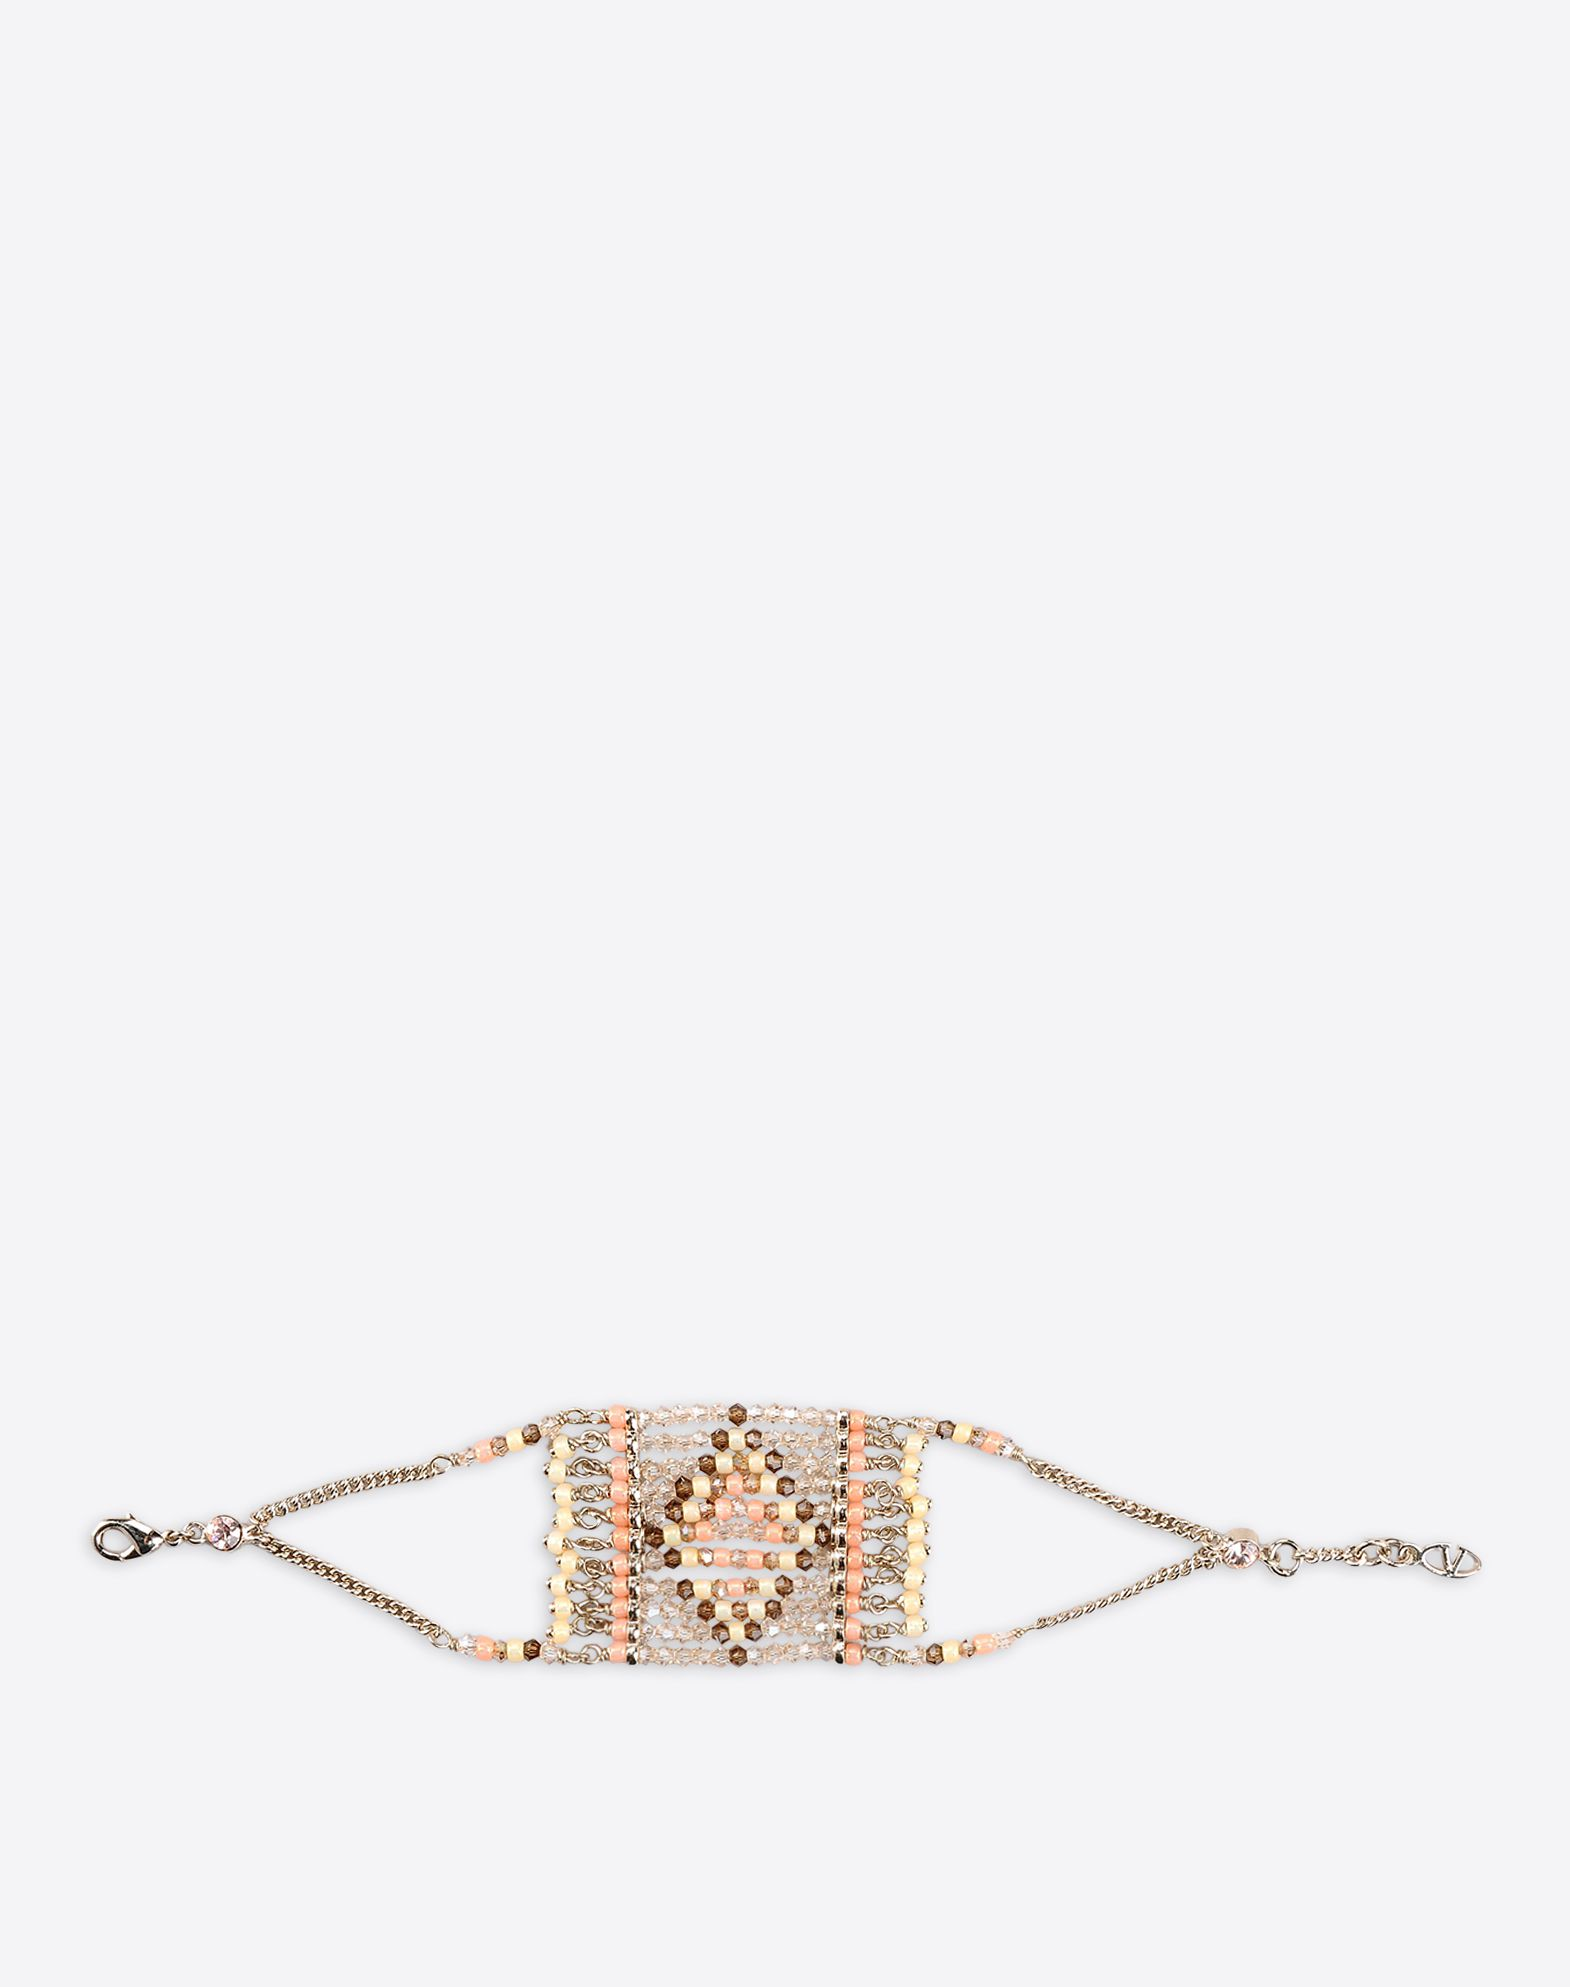 VALENTINO Valentino Garavani beads bracelet  - Platinum-finish brass chain   - Native Couture 1975 motif hand embroidered with beads  - Clasp closure  - Made in Italy 46426897mg